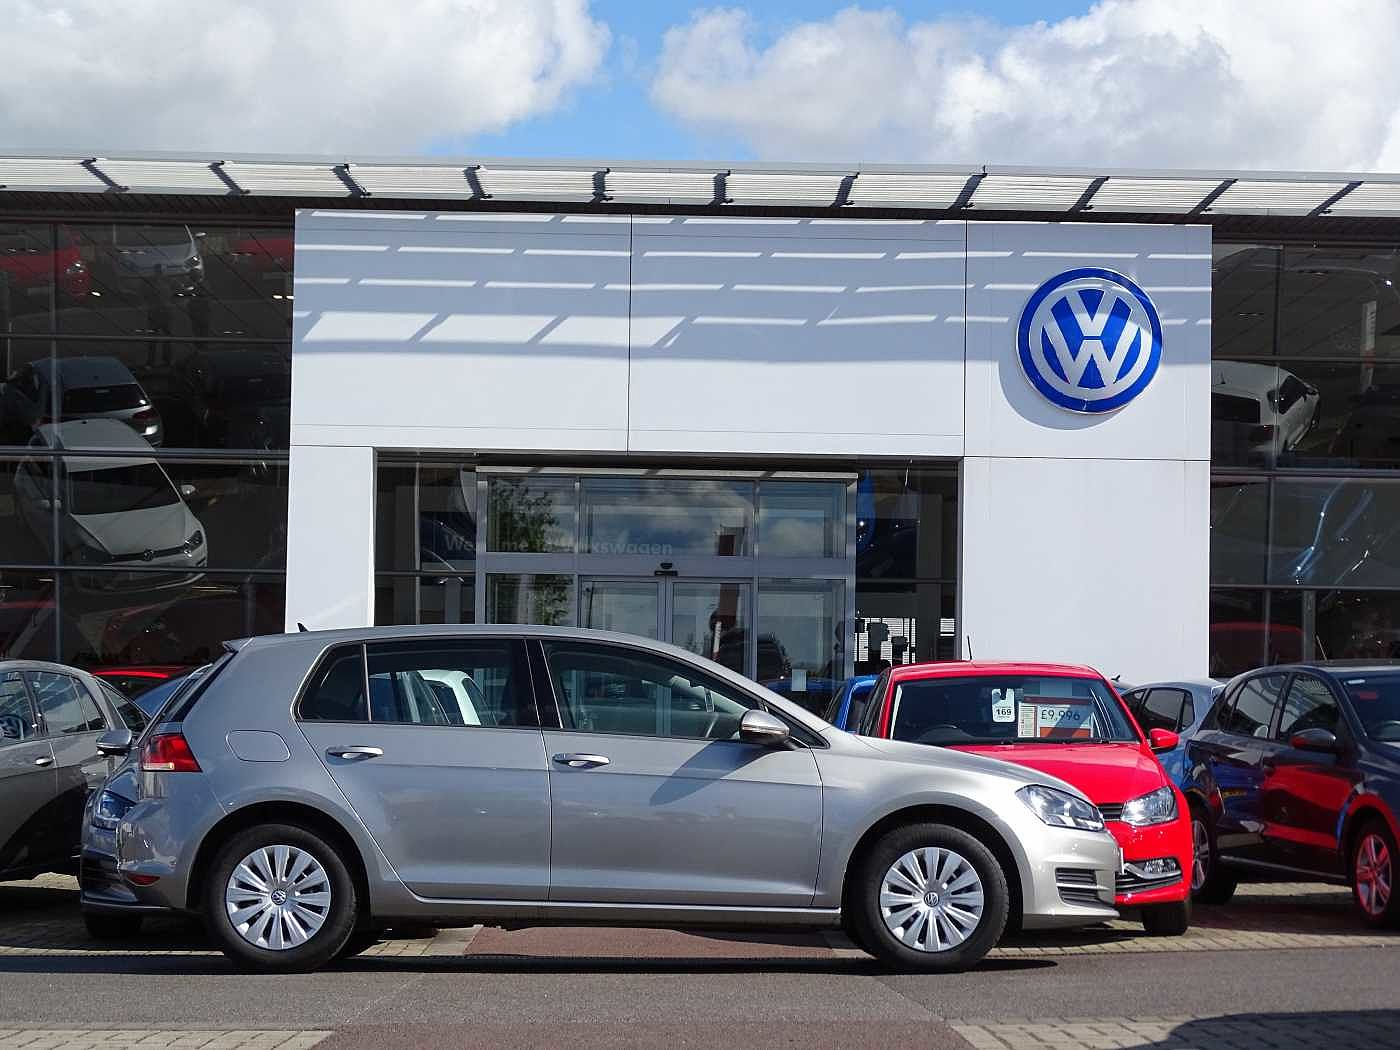 Golf 1.4 TSI S BMT (125 PS) 5-Dr | Bournemouth & Poole | Breeze VW